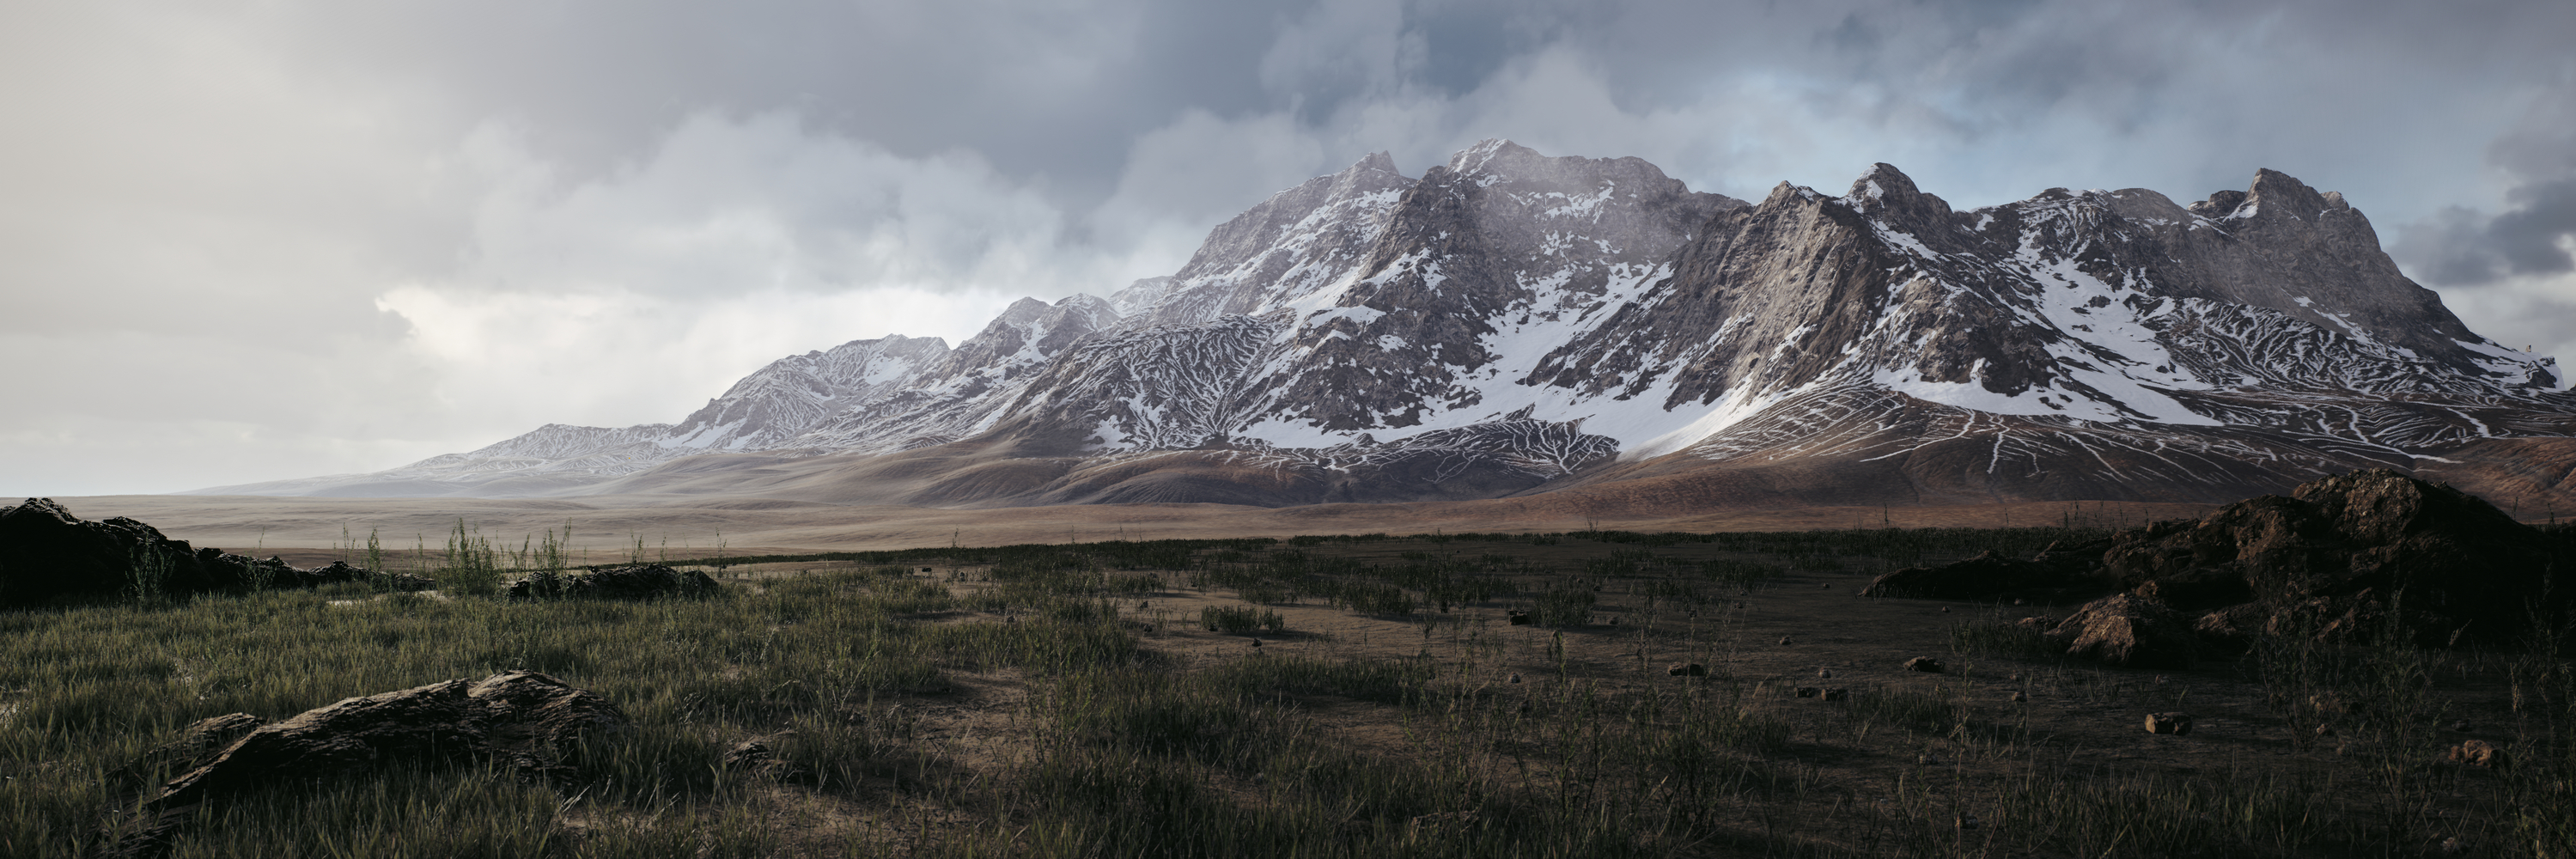 Free Unreal Engine 4 Landscape Shader Polycount